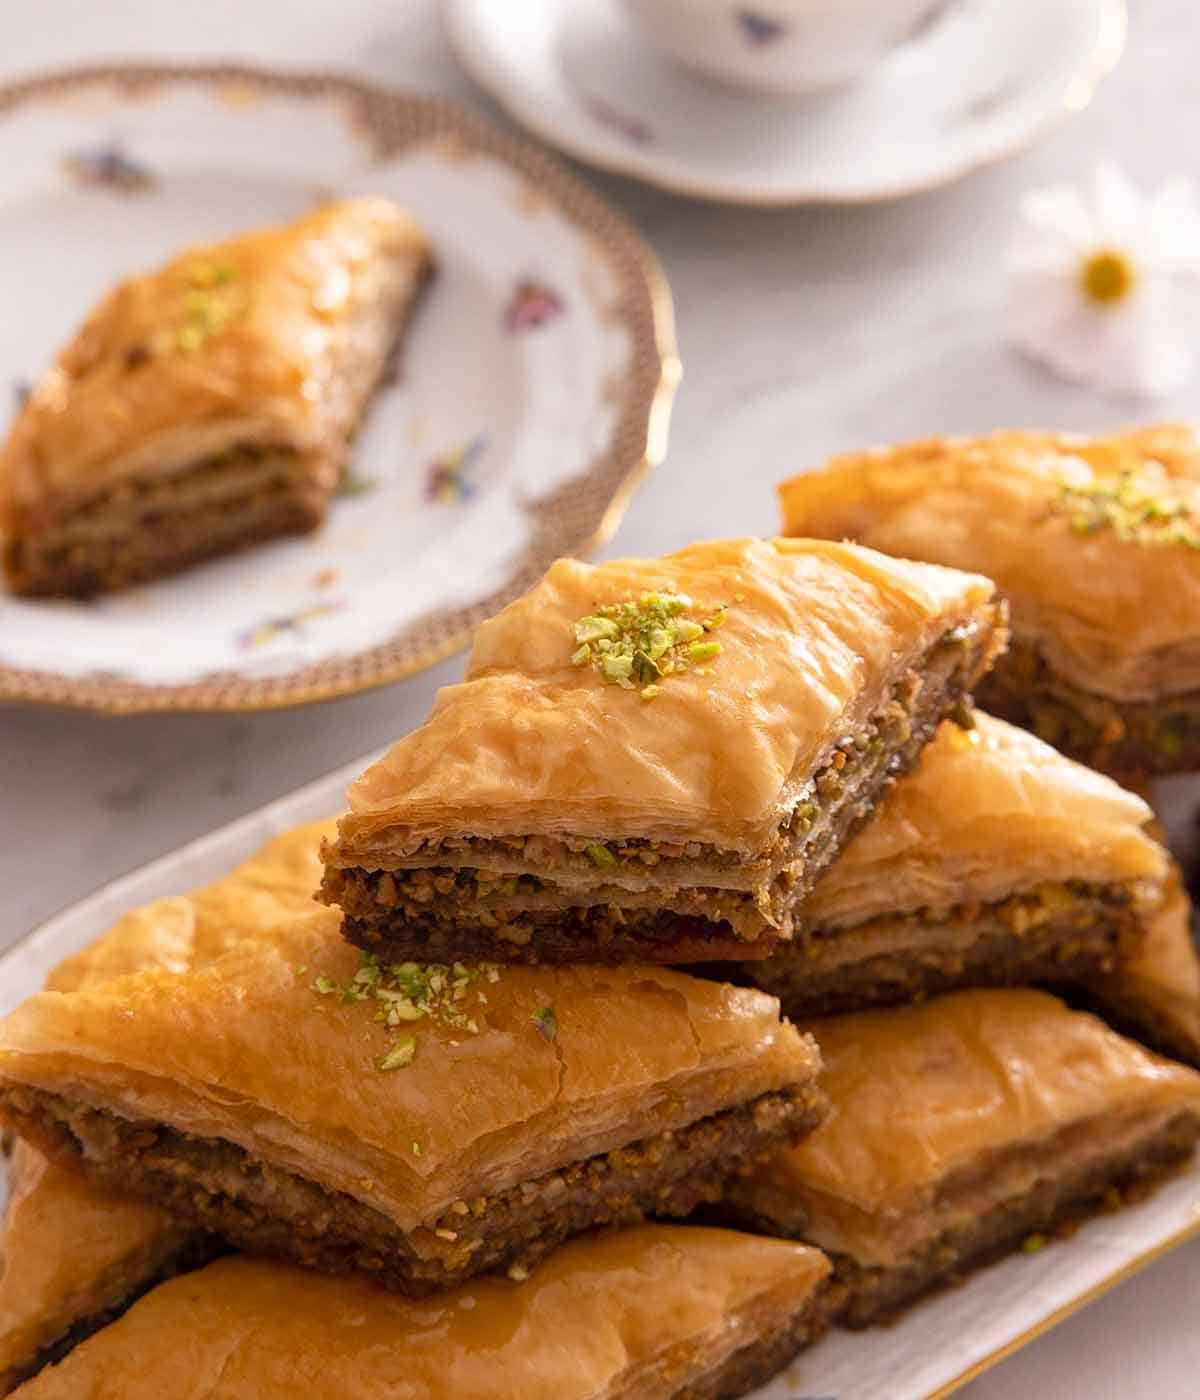 A platter of baklava stacked on top of each other with a plate with a single serving in the background.